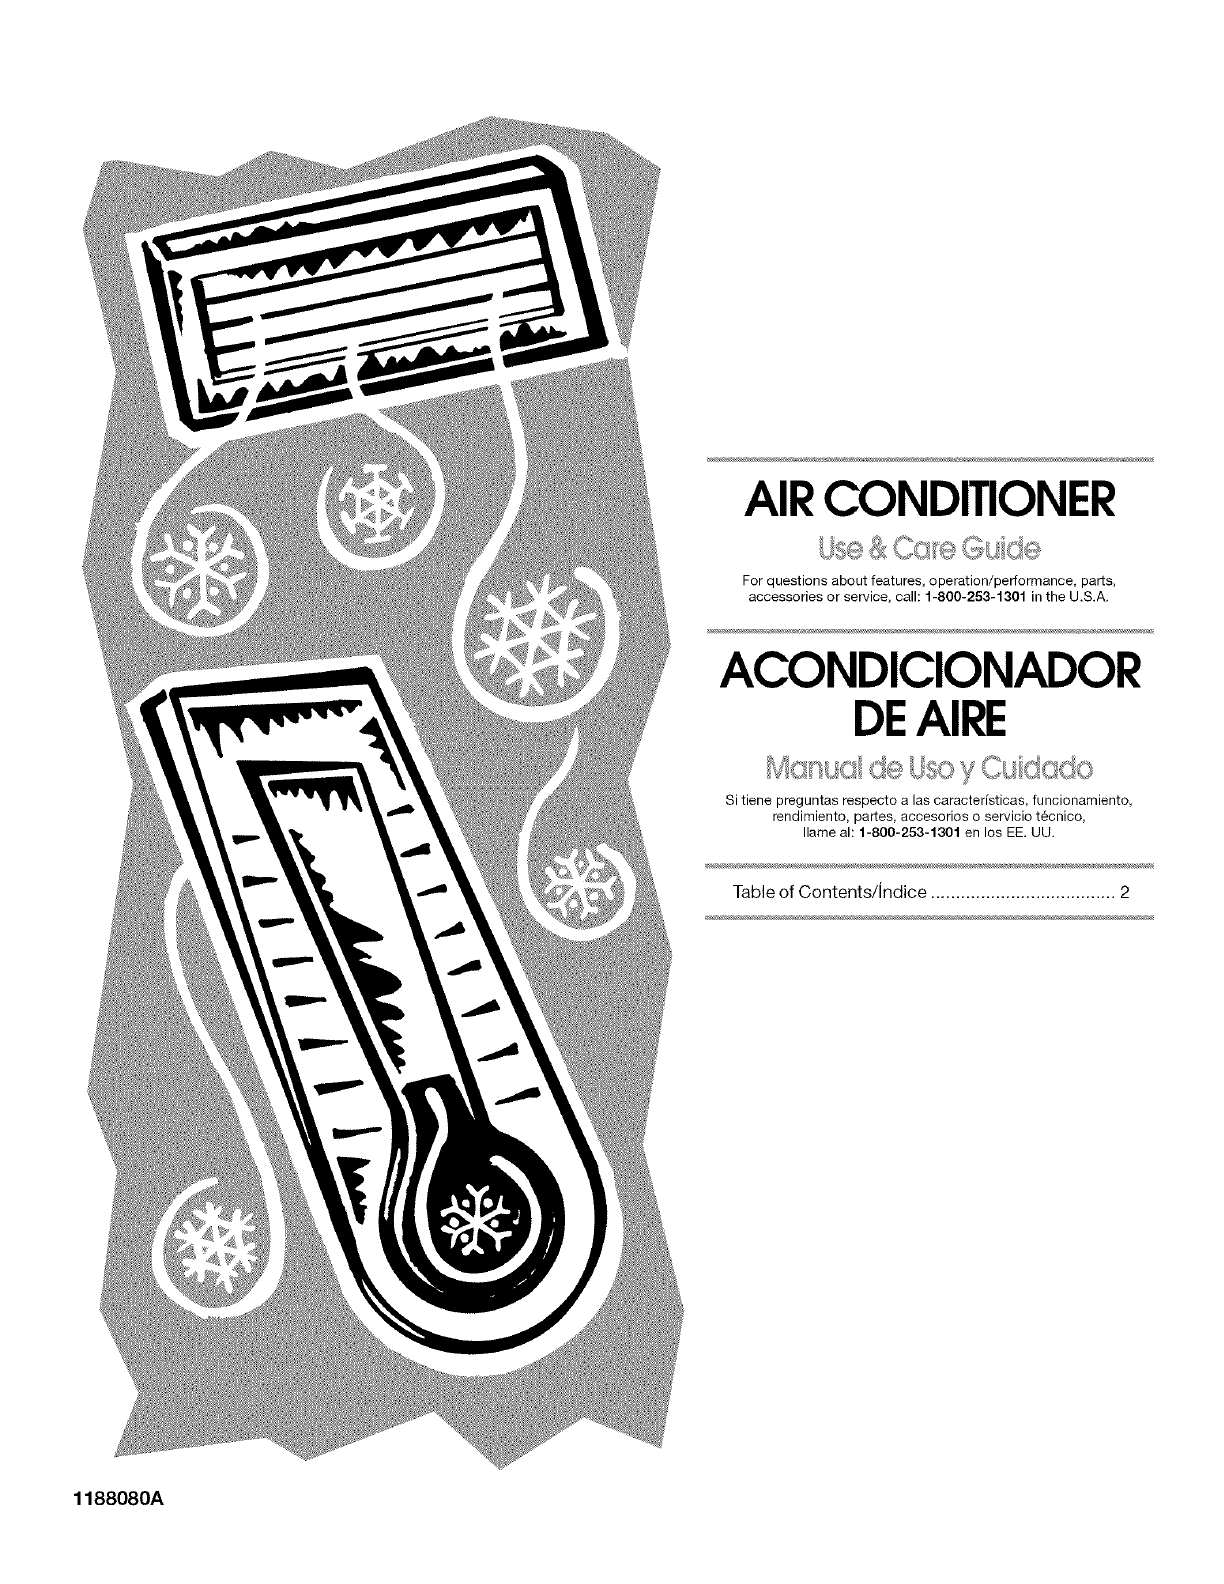 hight resolution of whirlpool ace082xs2 user manual air conditioner manuals and guides l0605404